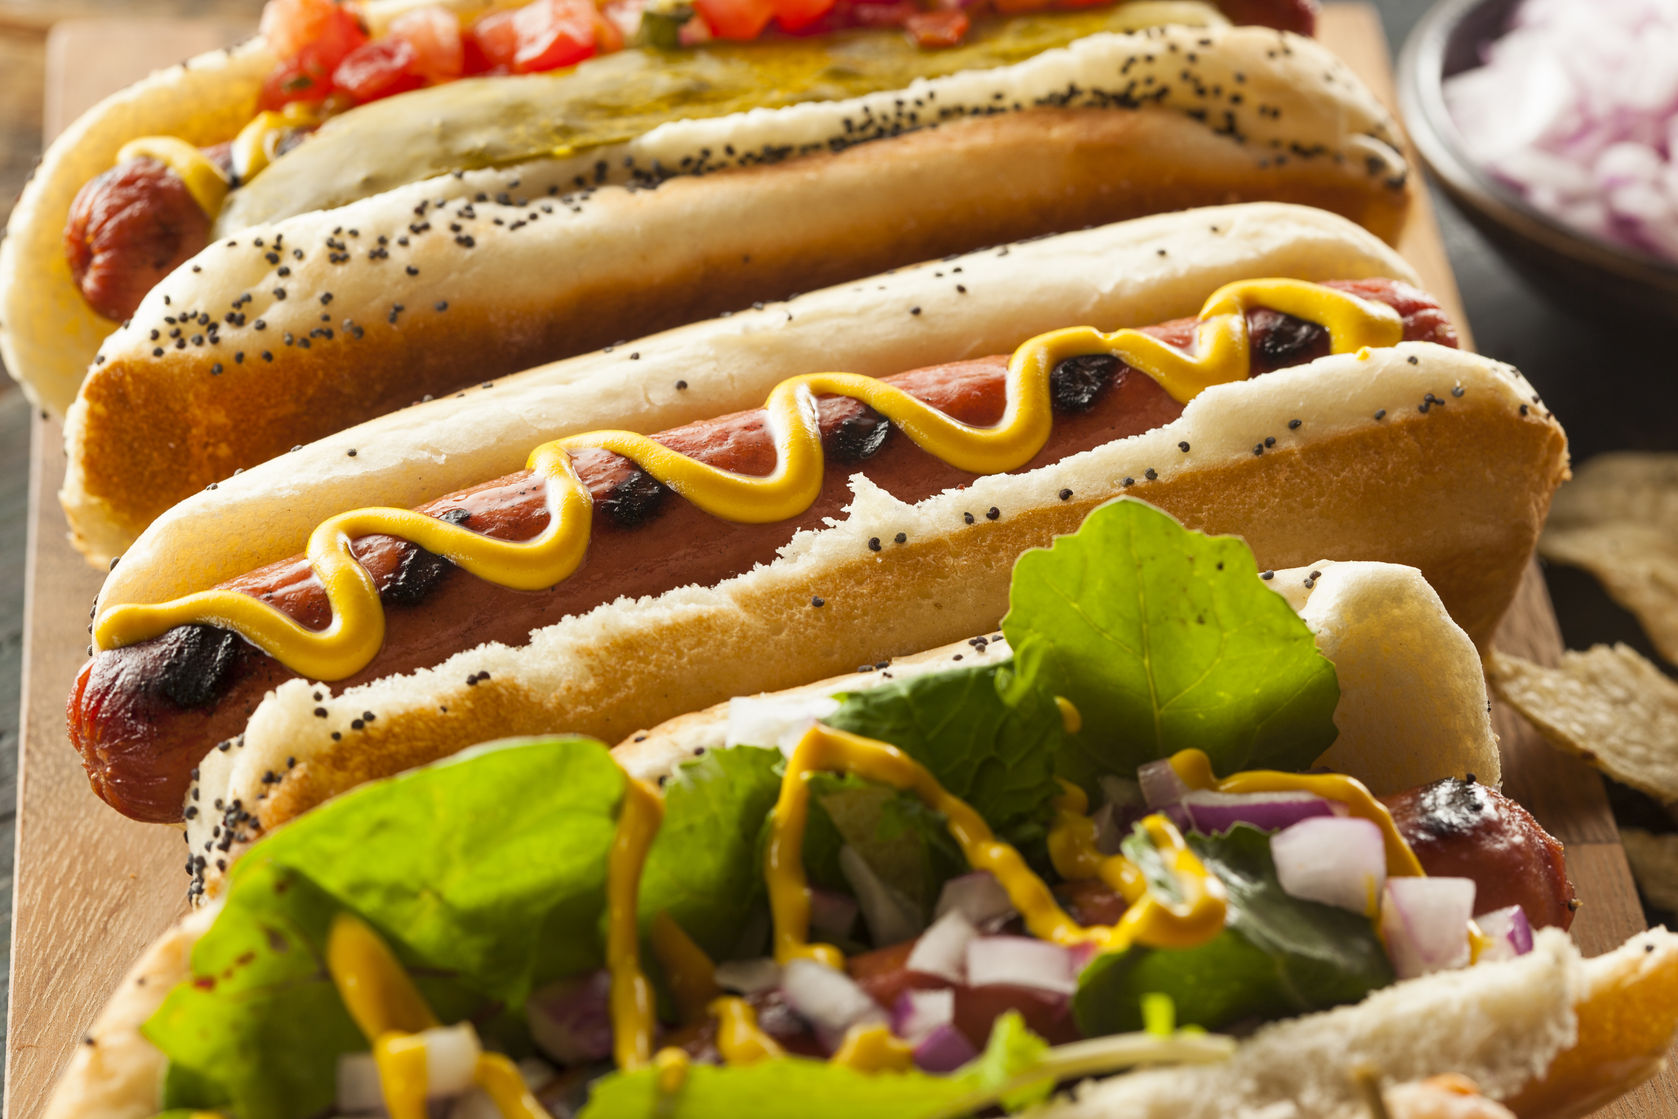 Hot dog banale spuntino o specialit da applauso gli for Cucinare hot dog